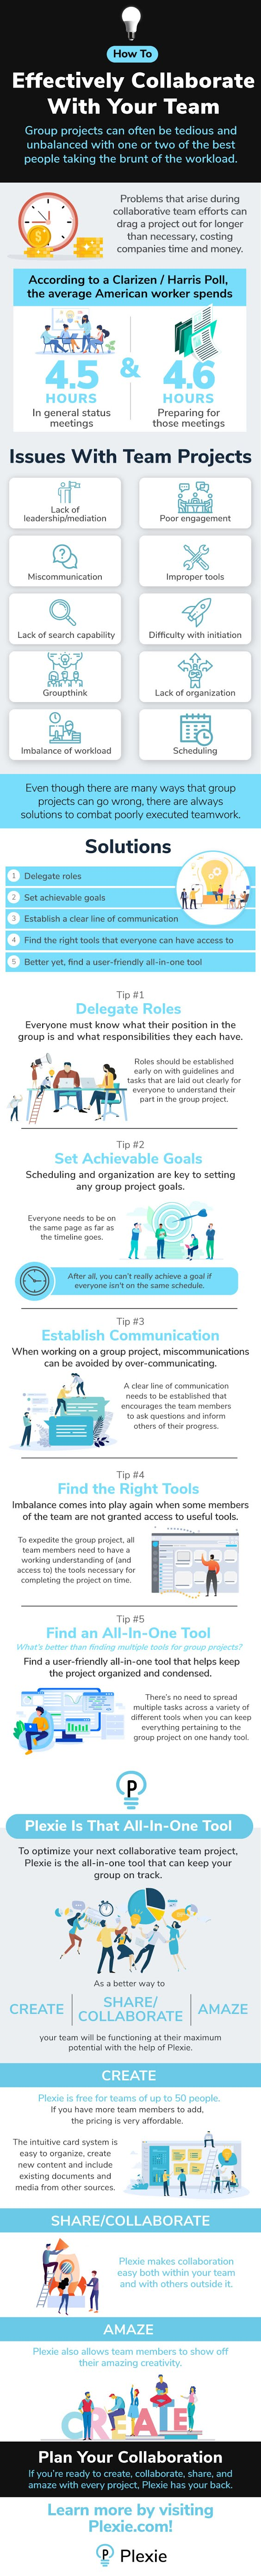 How To Effectively Collaborate With Your Team #infographic